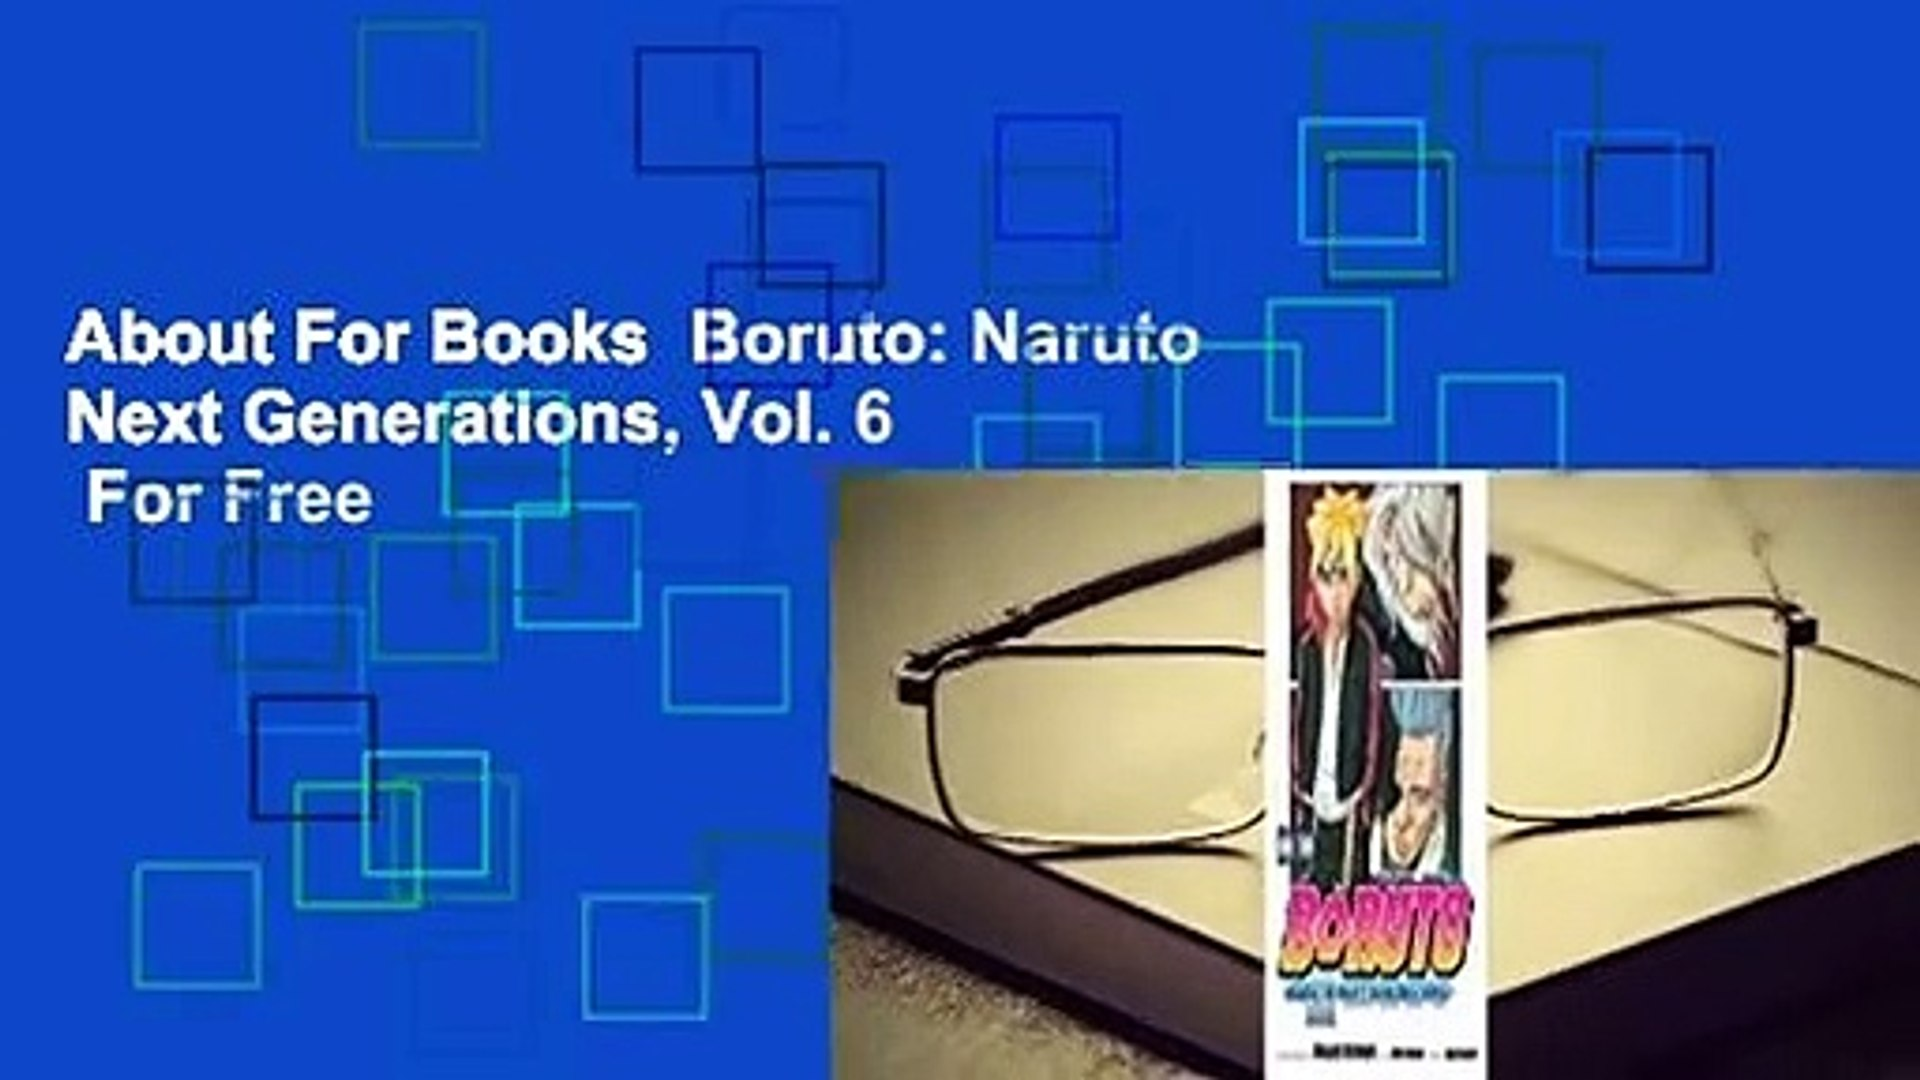 About For Books  Boruto: Naruto Next Generations, Vol. 6  For Free